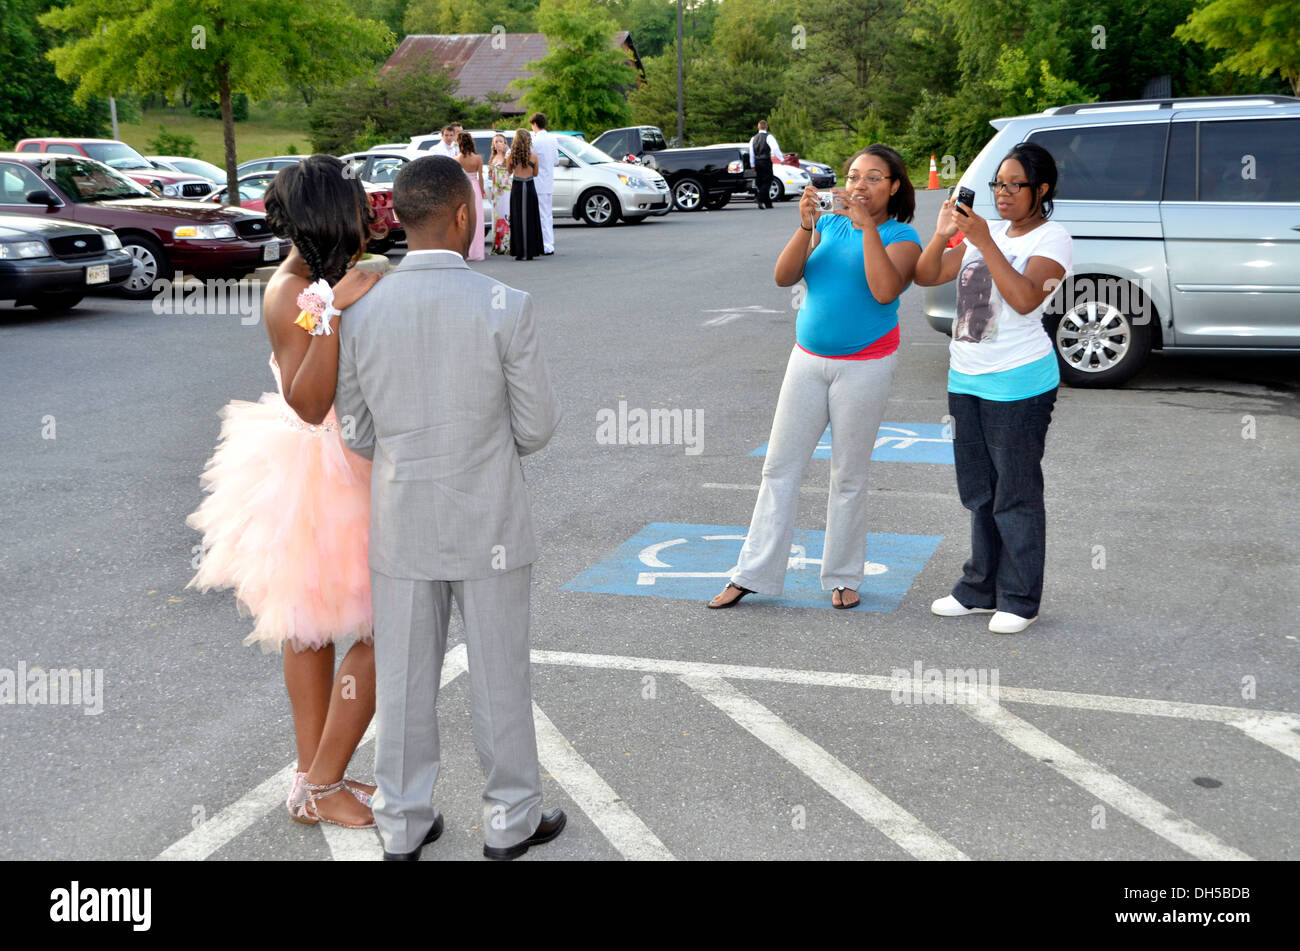 Relatives line up to take pictures of a couple at their high school prom in Dunkirk, Md - Stock Image